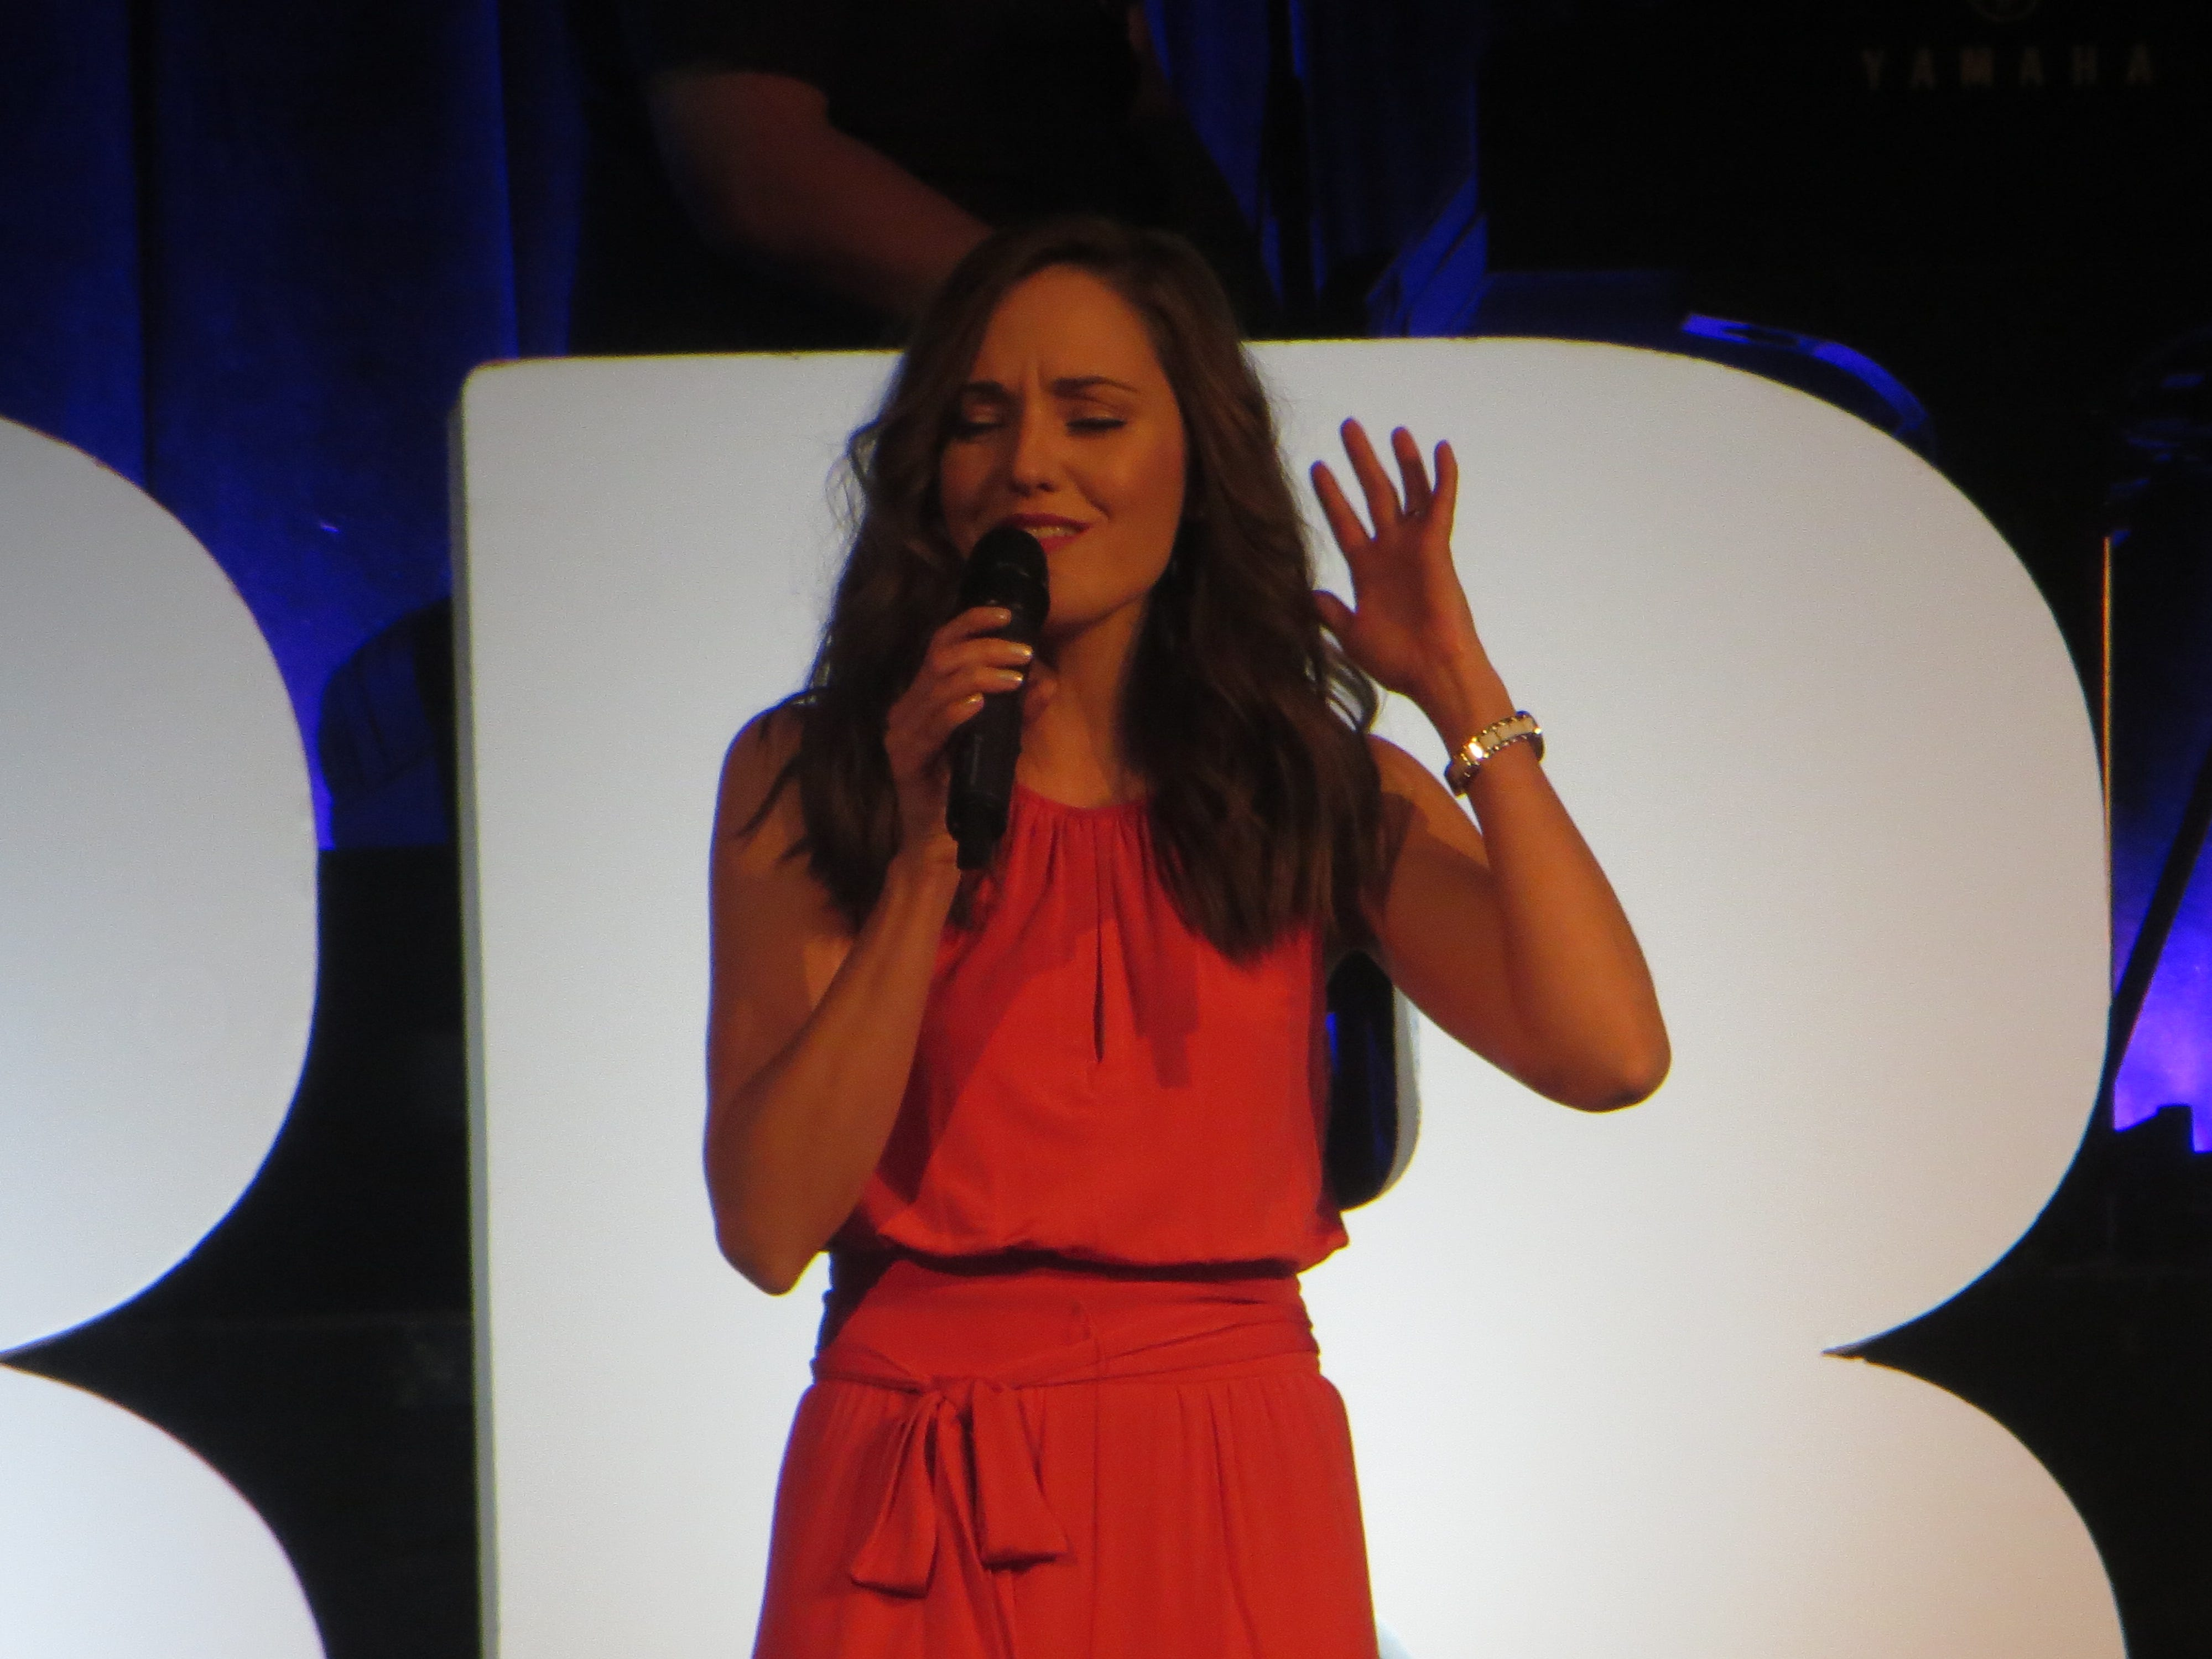 Laura Osnes performs at BroadwayCon 2019, held Jan. 11 to 13, 2019, at the New York Hilton Midtown in Manhattan.